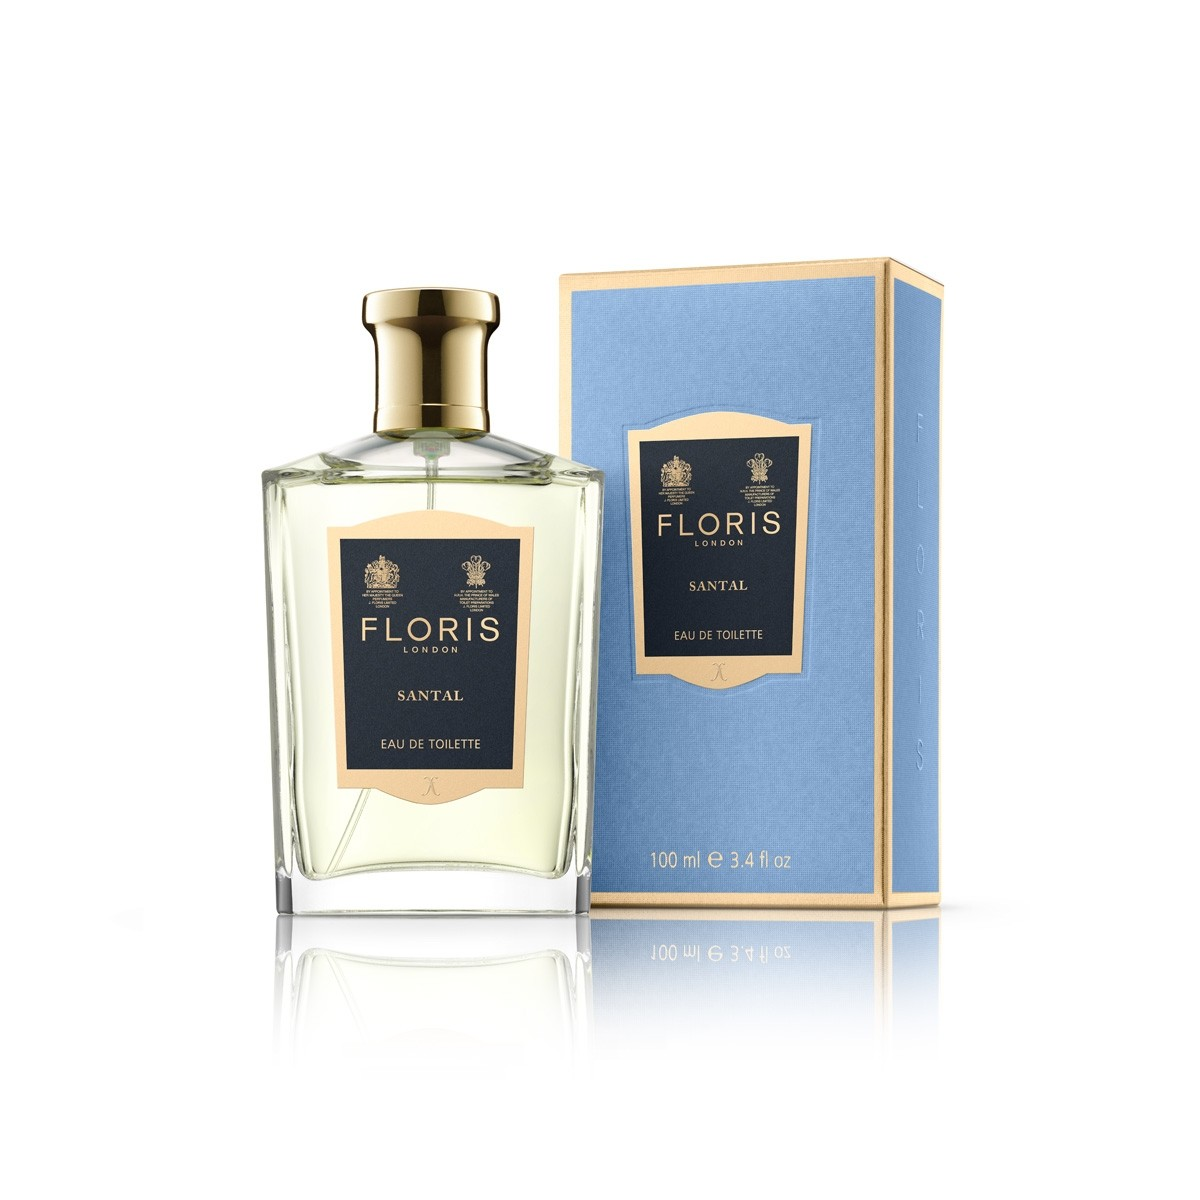 Floris Santal Eau de Toilette 100 ml